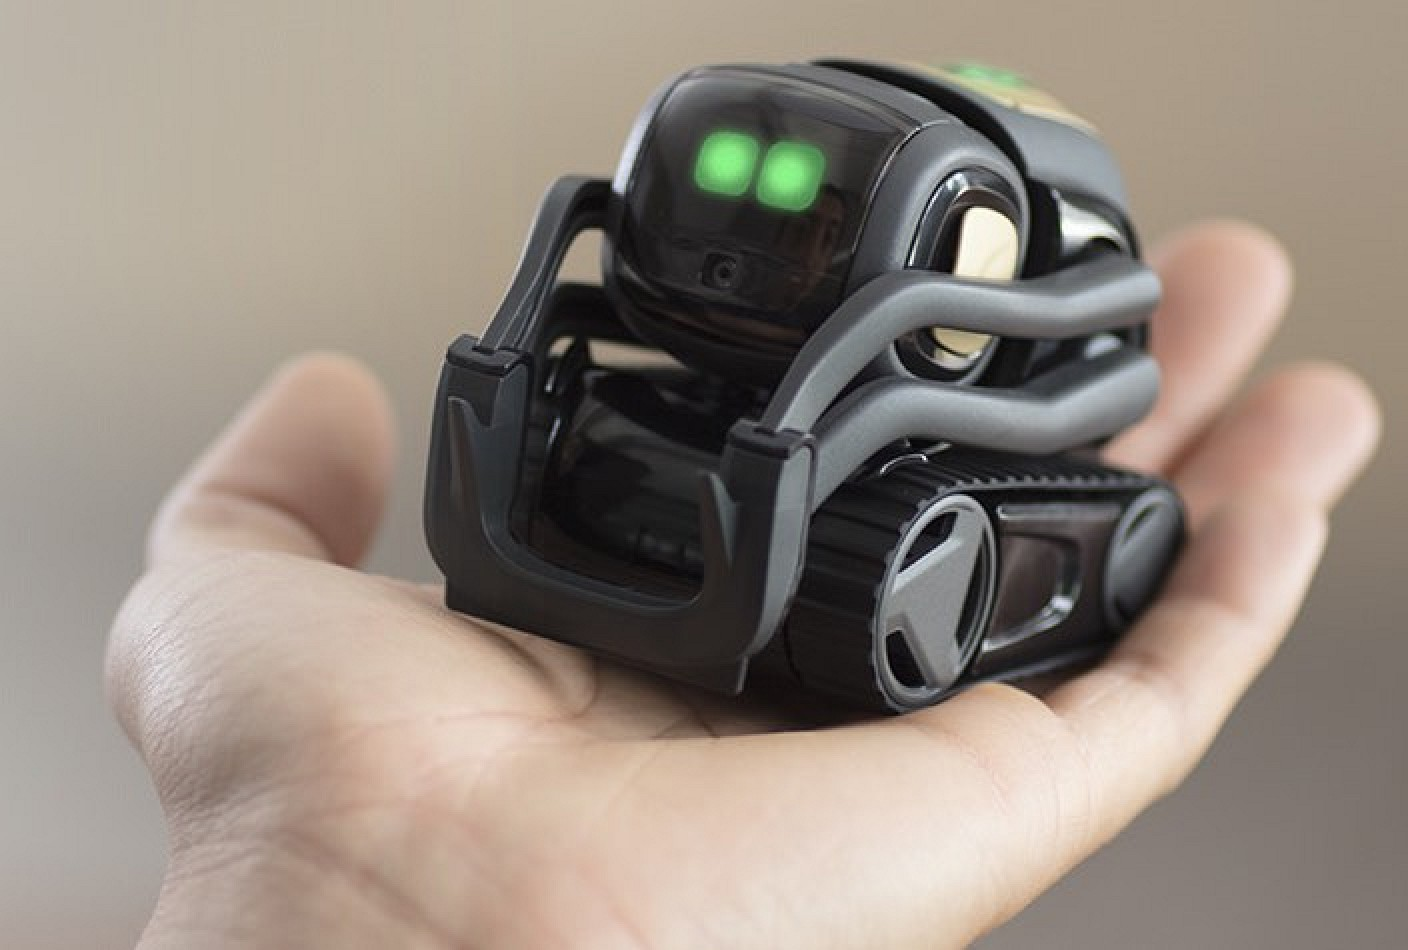 Anki's 'Vector' Home Robot Now Available for Purchase